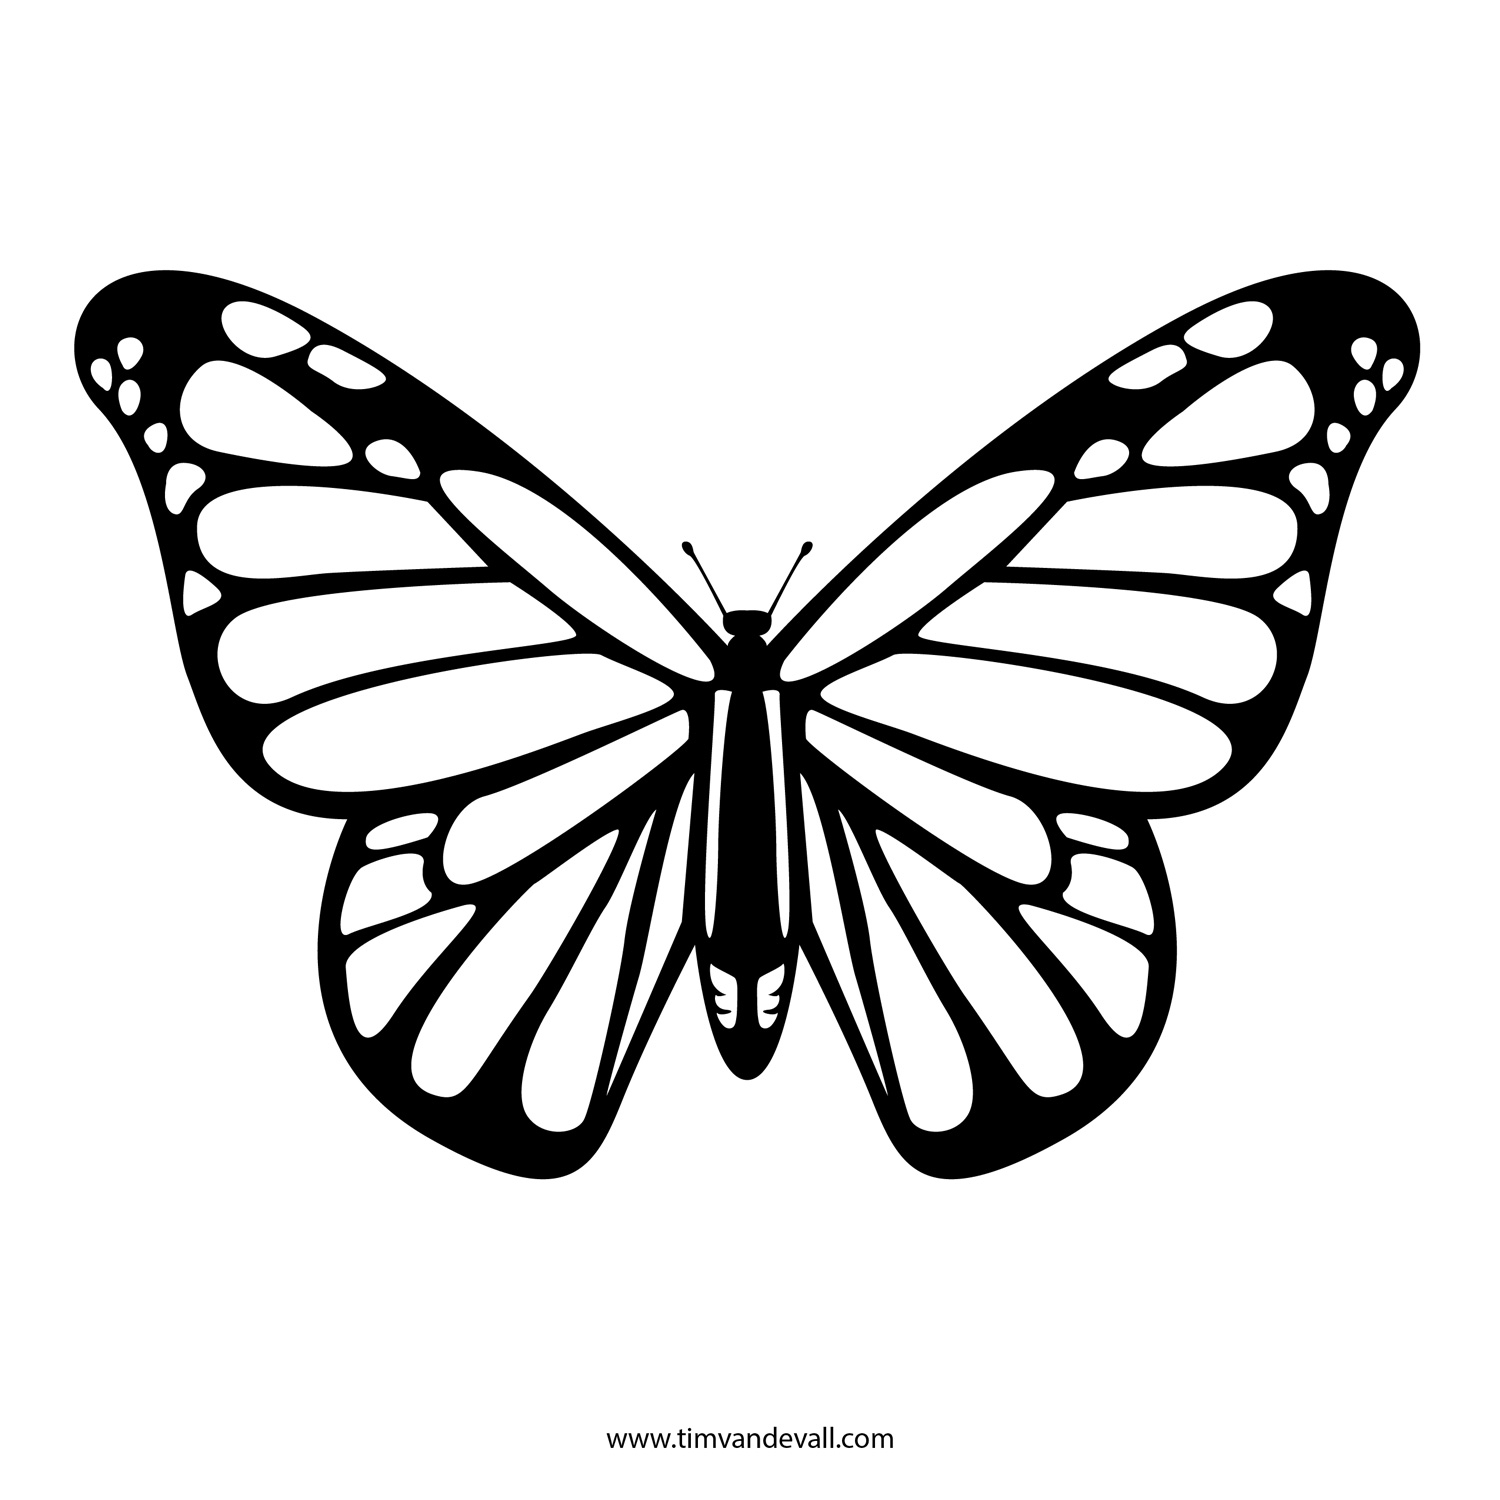 Butterfly Black And White Monarch Butterfly Clipart Black And White 3 Gclipart